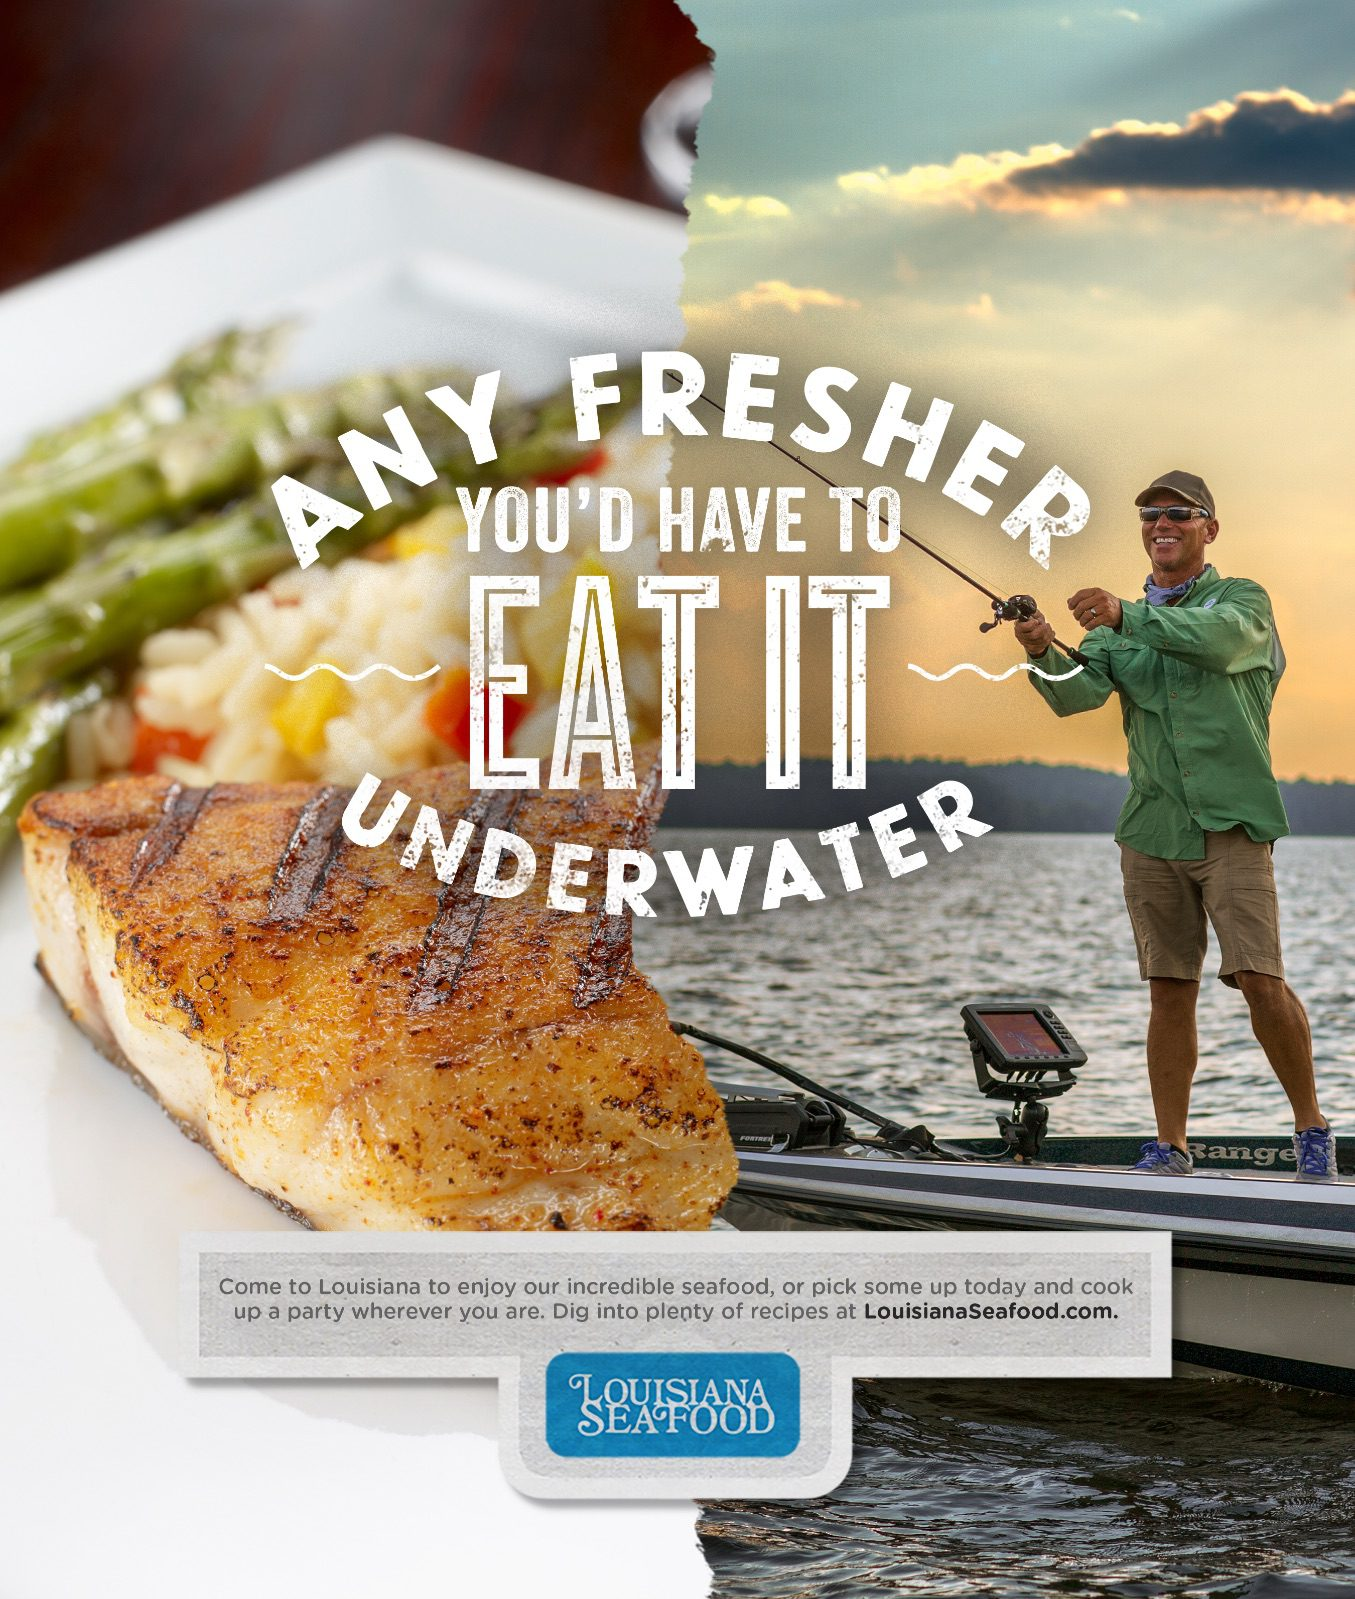 ad for louisiana seafood featuring half of ad with man fishing and other half of ad with fish on dinner plate